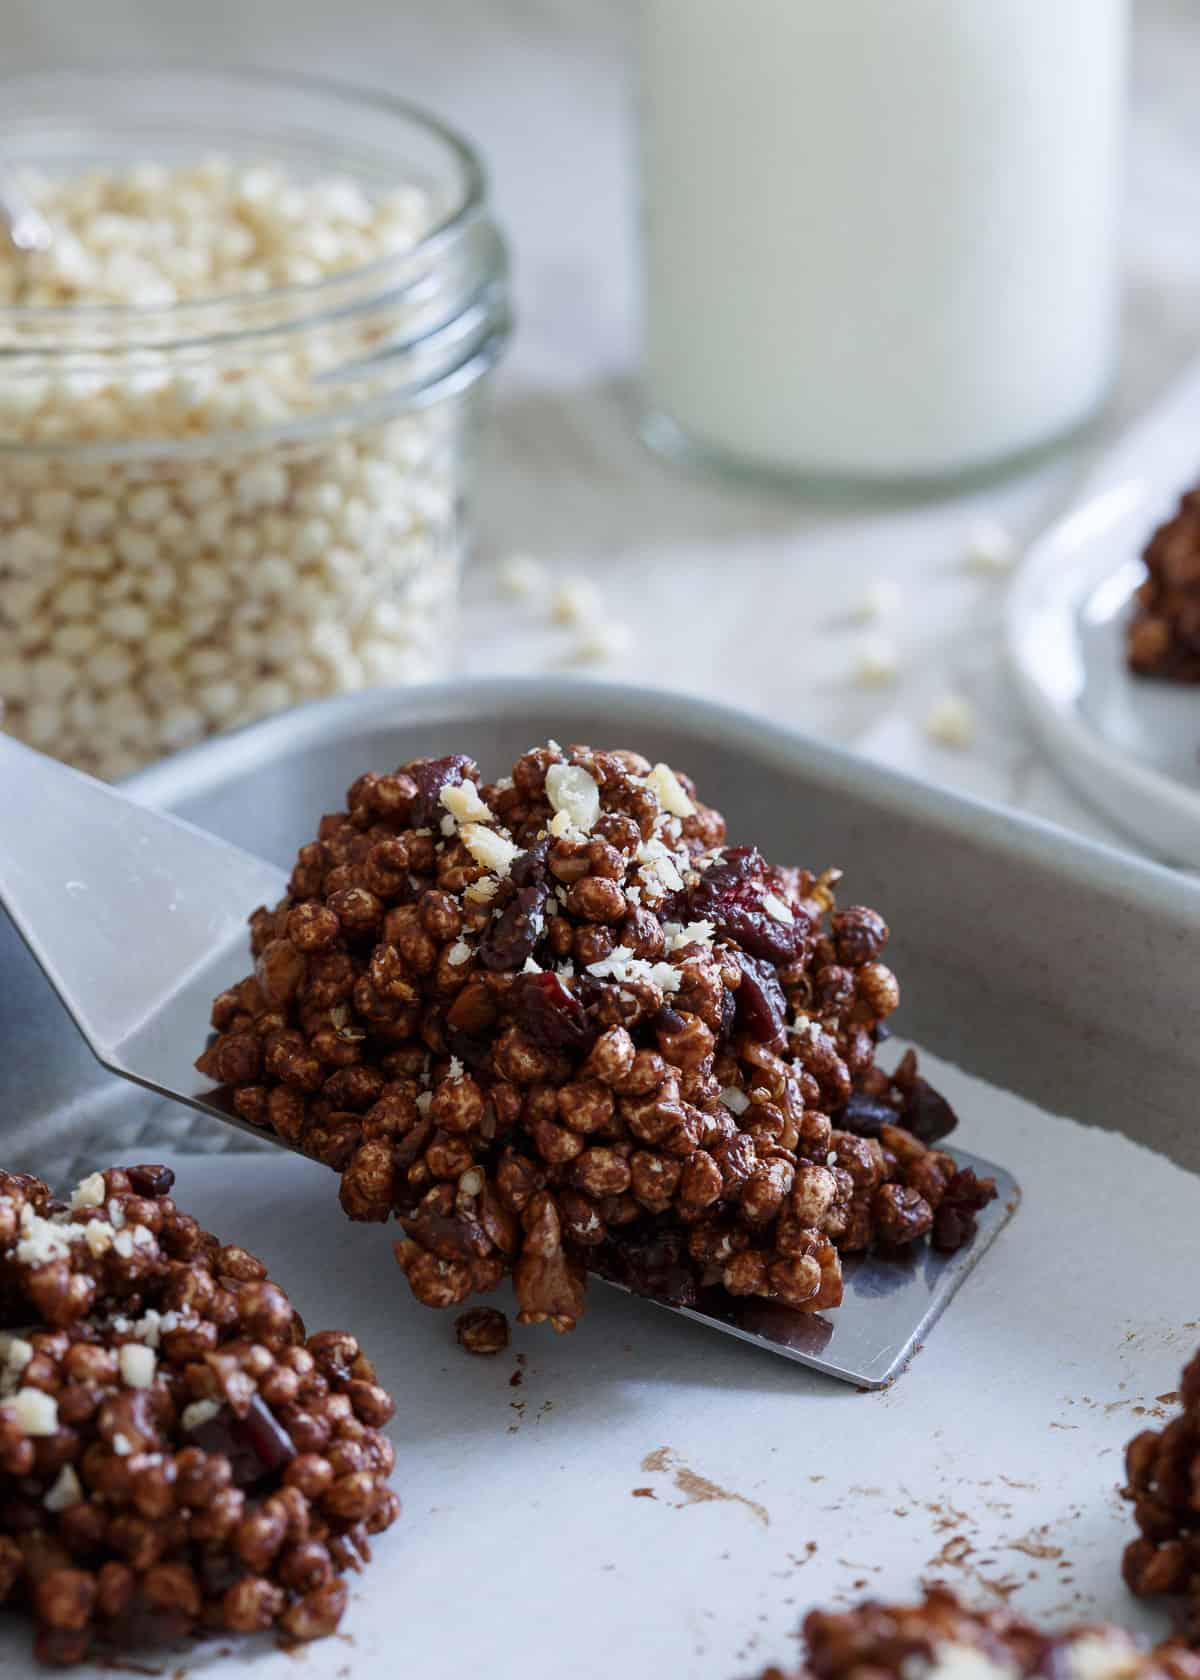 Chocolate Cranberry Puffed Millet Cookies are an easy gluten free no bake treat